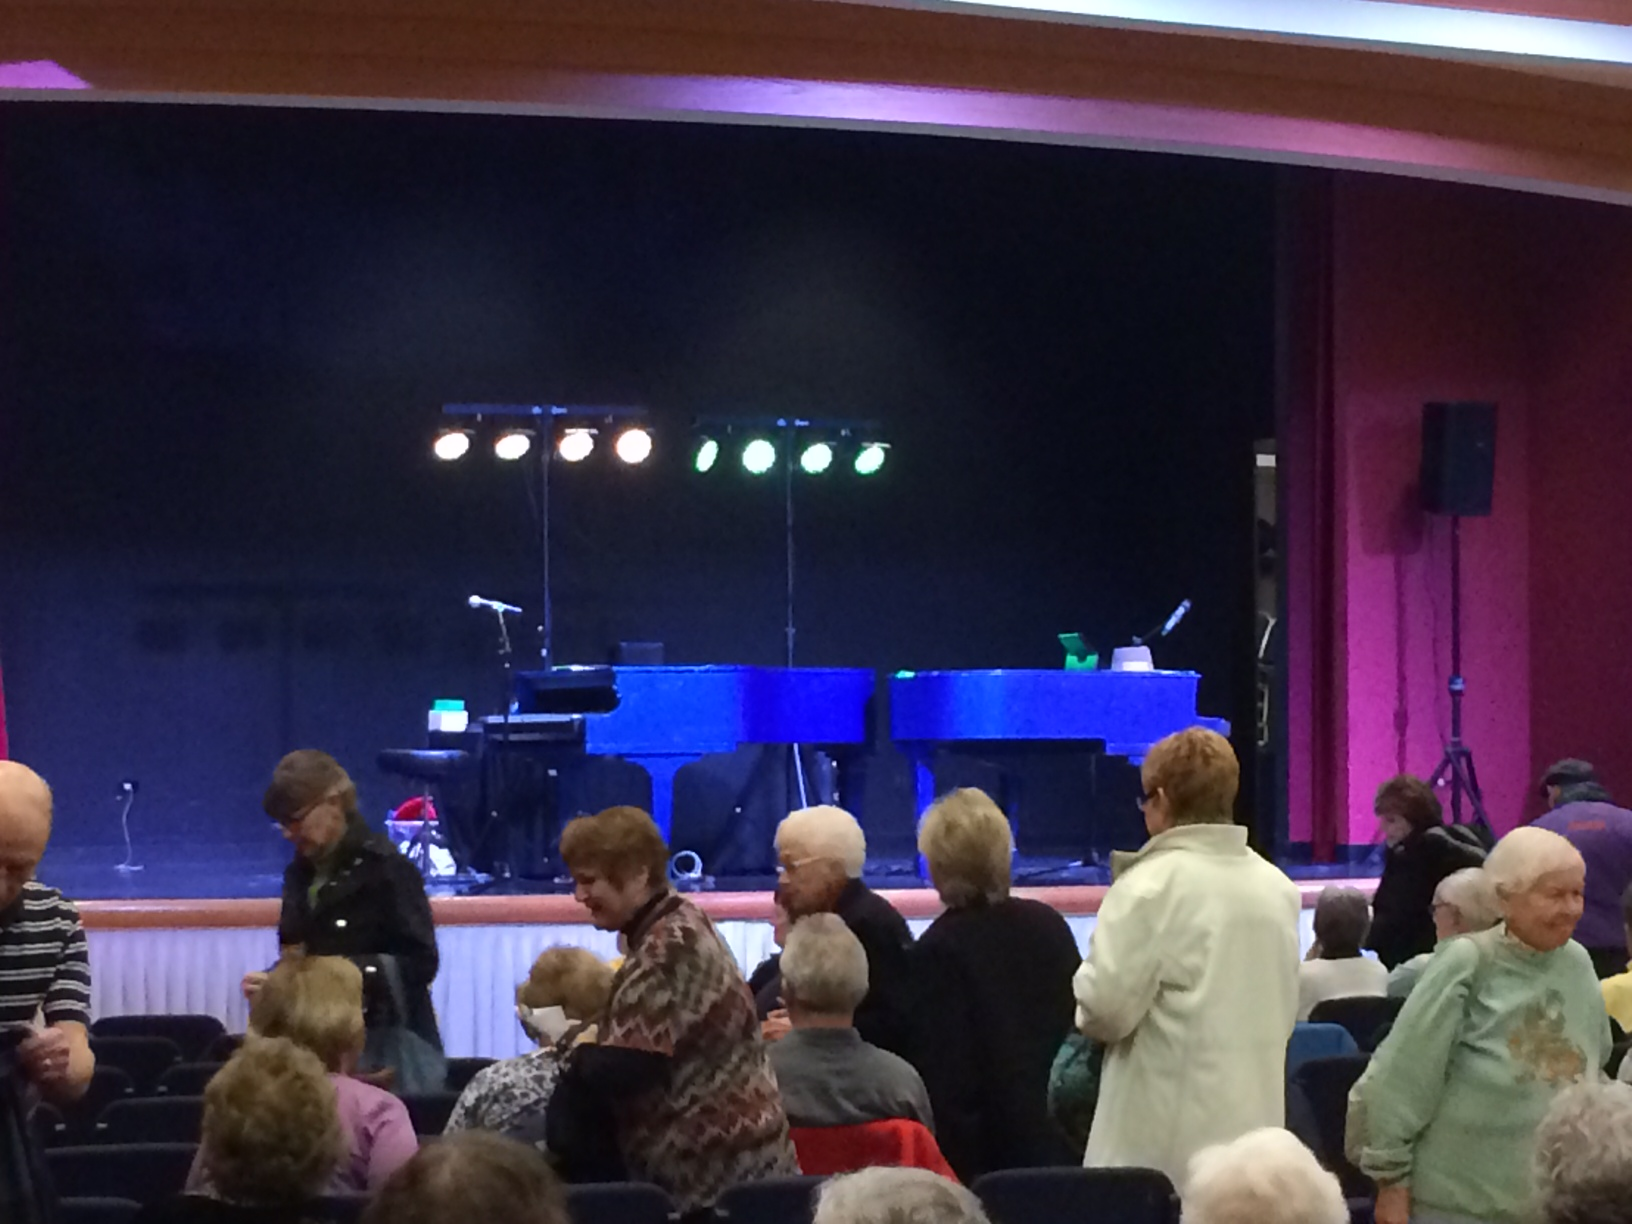 Senior Citizens Rock Hard To Dueling Pianos